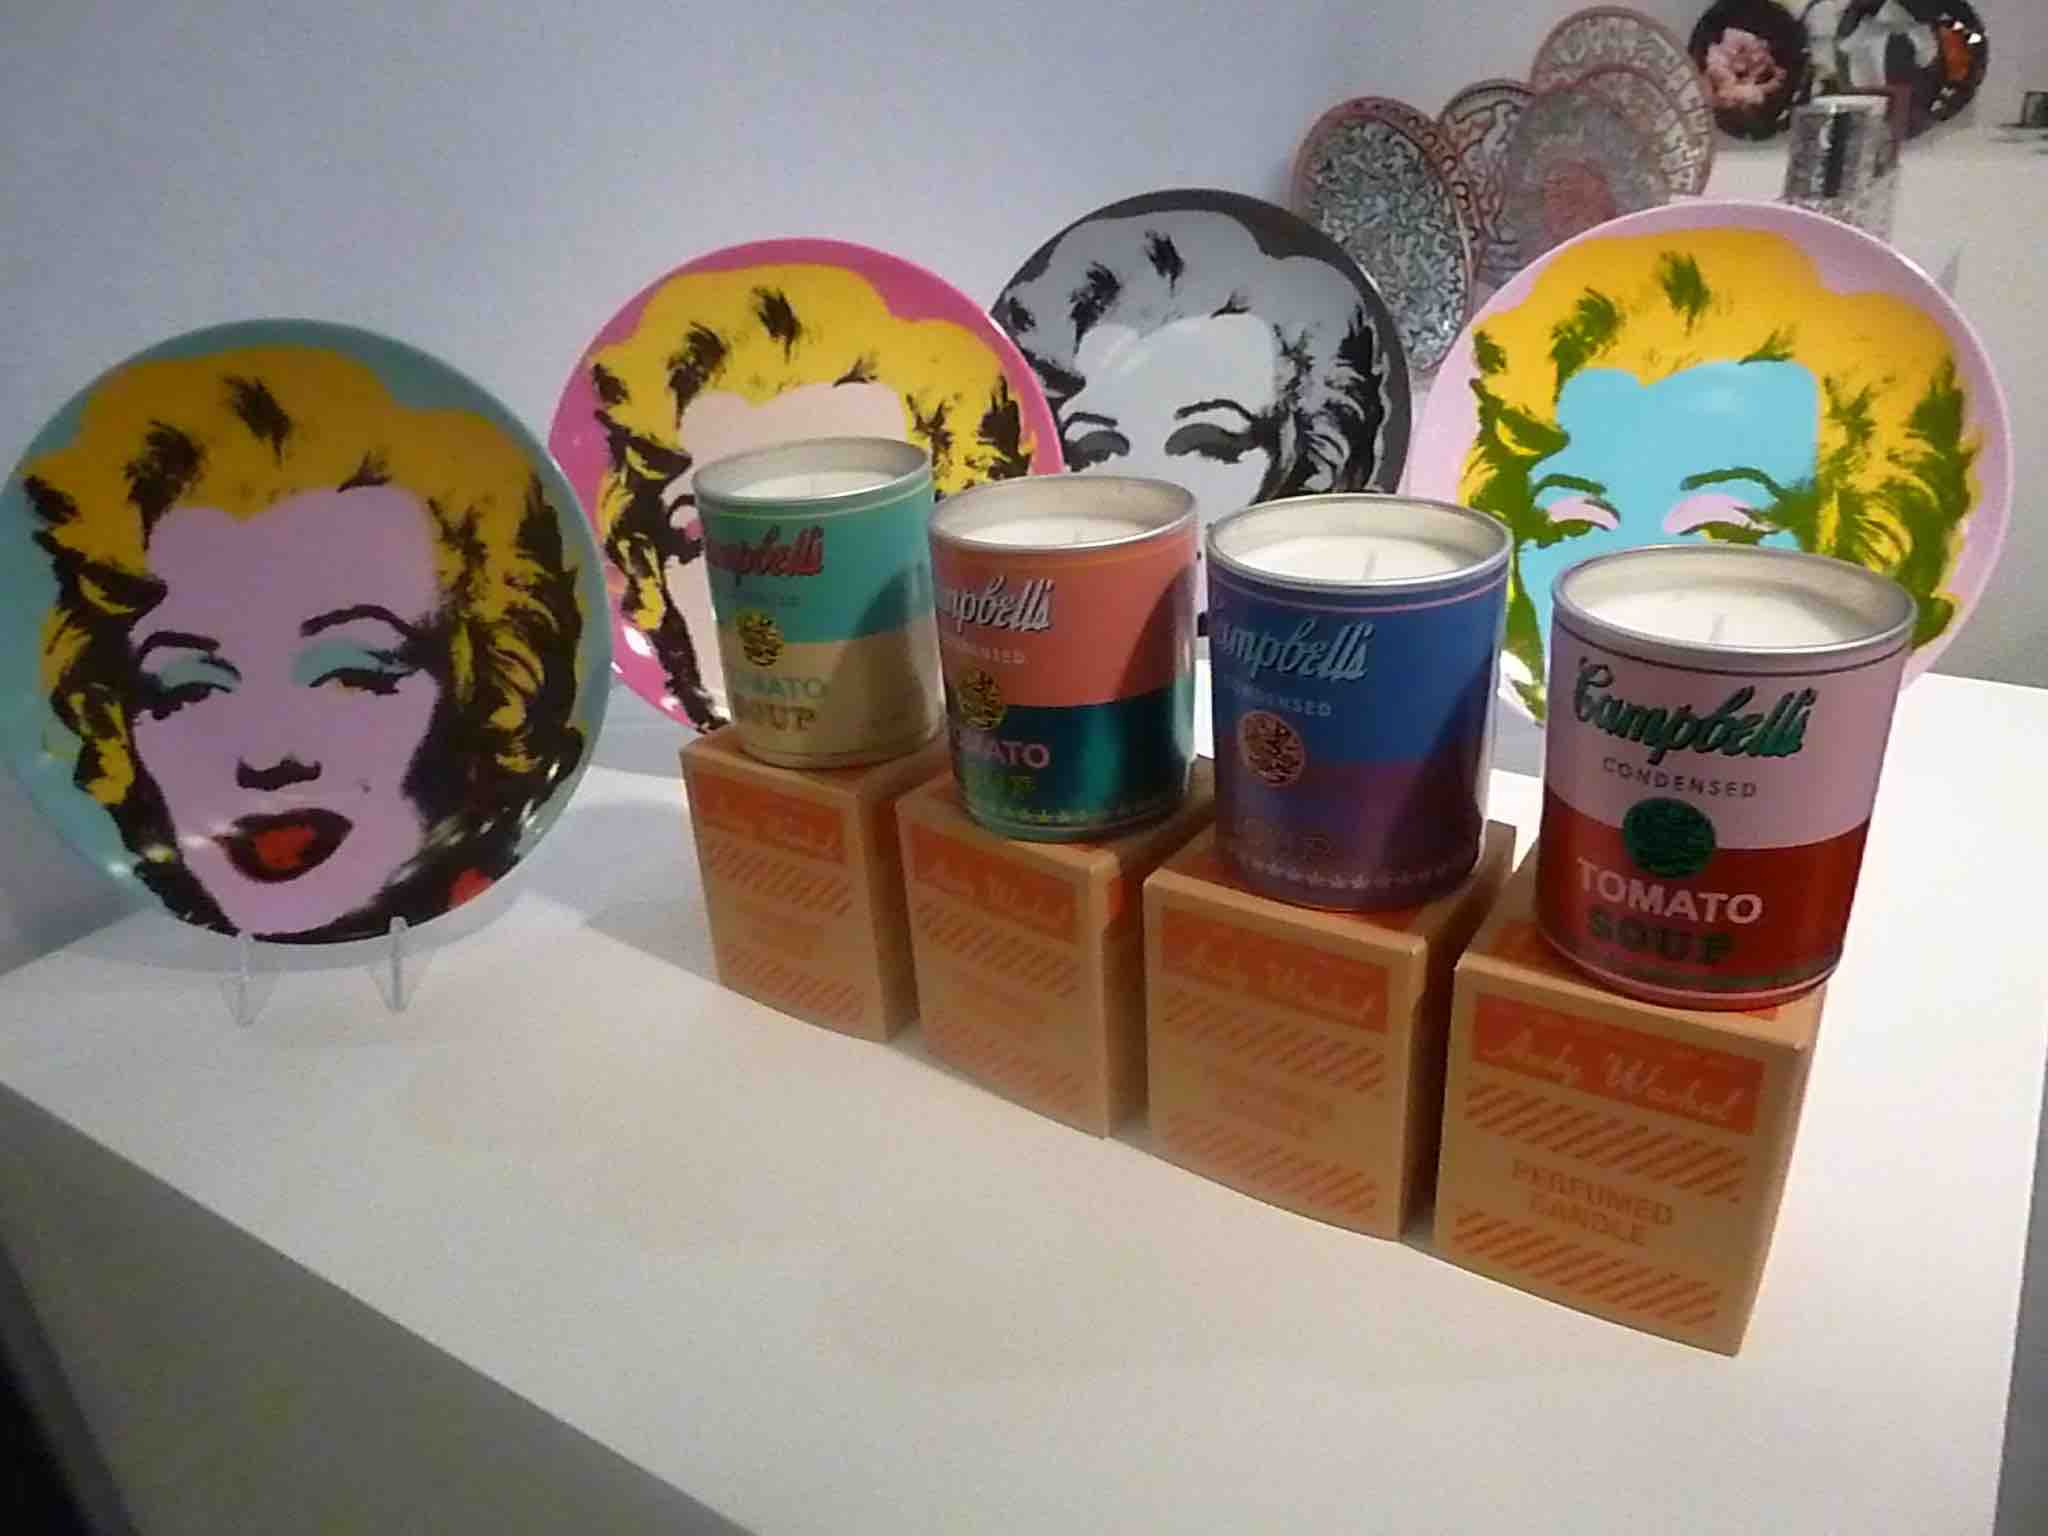 Andy Warhol by Ligne Blanche, Tomato x basil scent